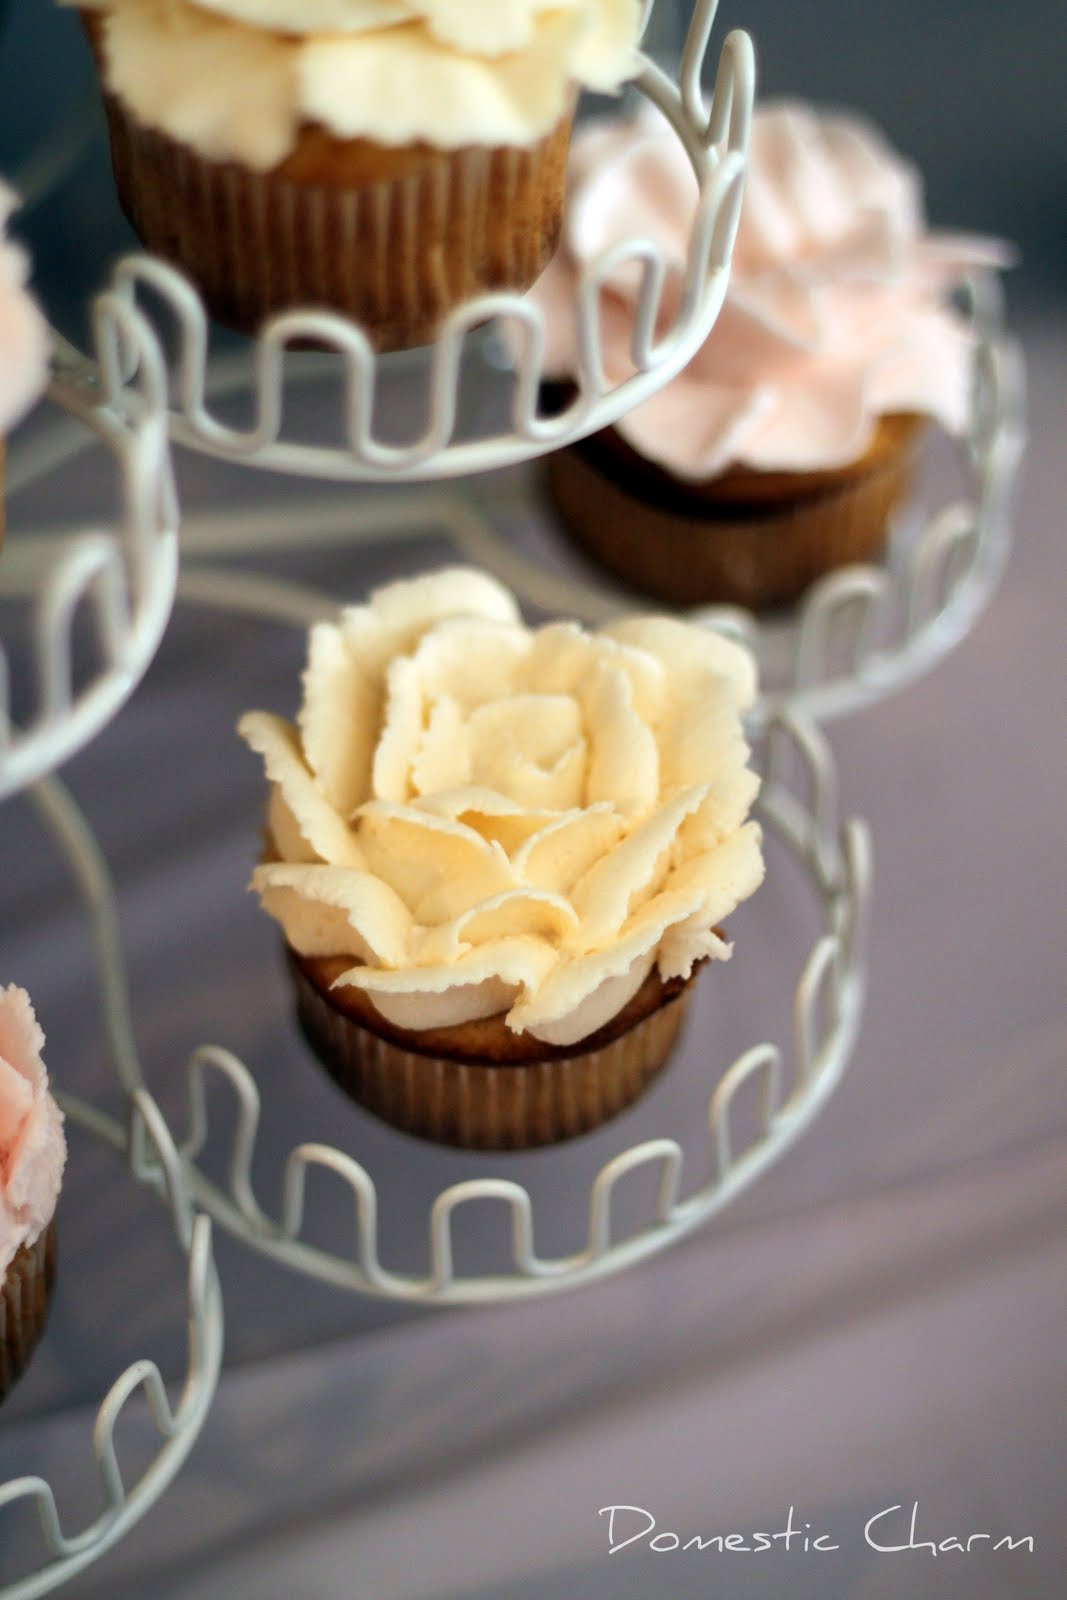 Domestic Charm Buttercream Flower Cupcakes